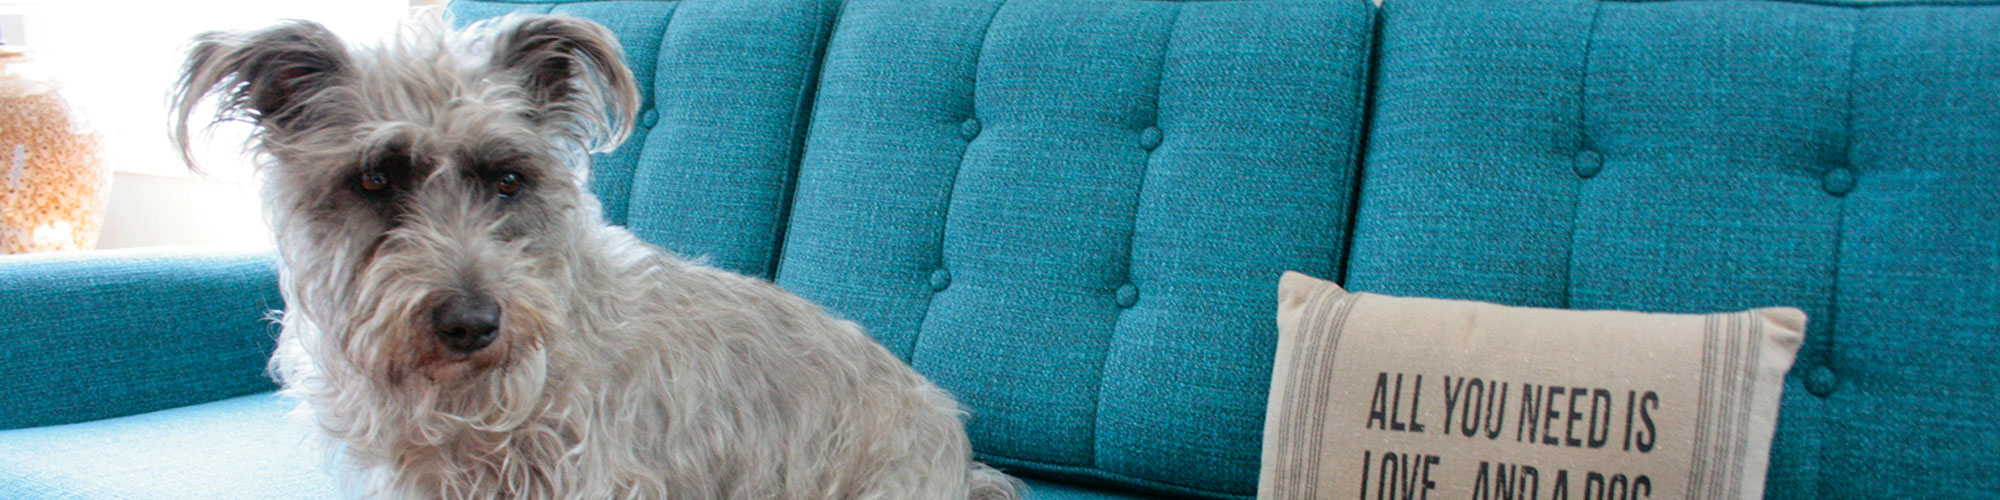 Pet Friendly Furniture & Fabrics | Joybird For Allie Jade Sofa Chairs (View 11 of 25)